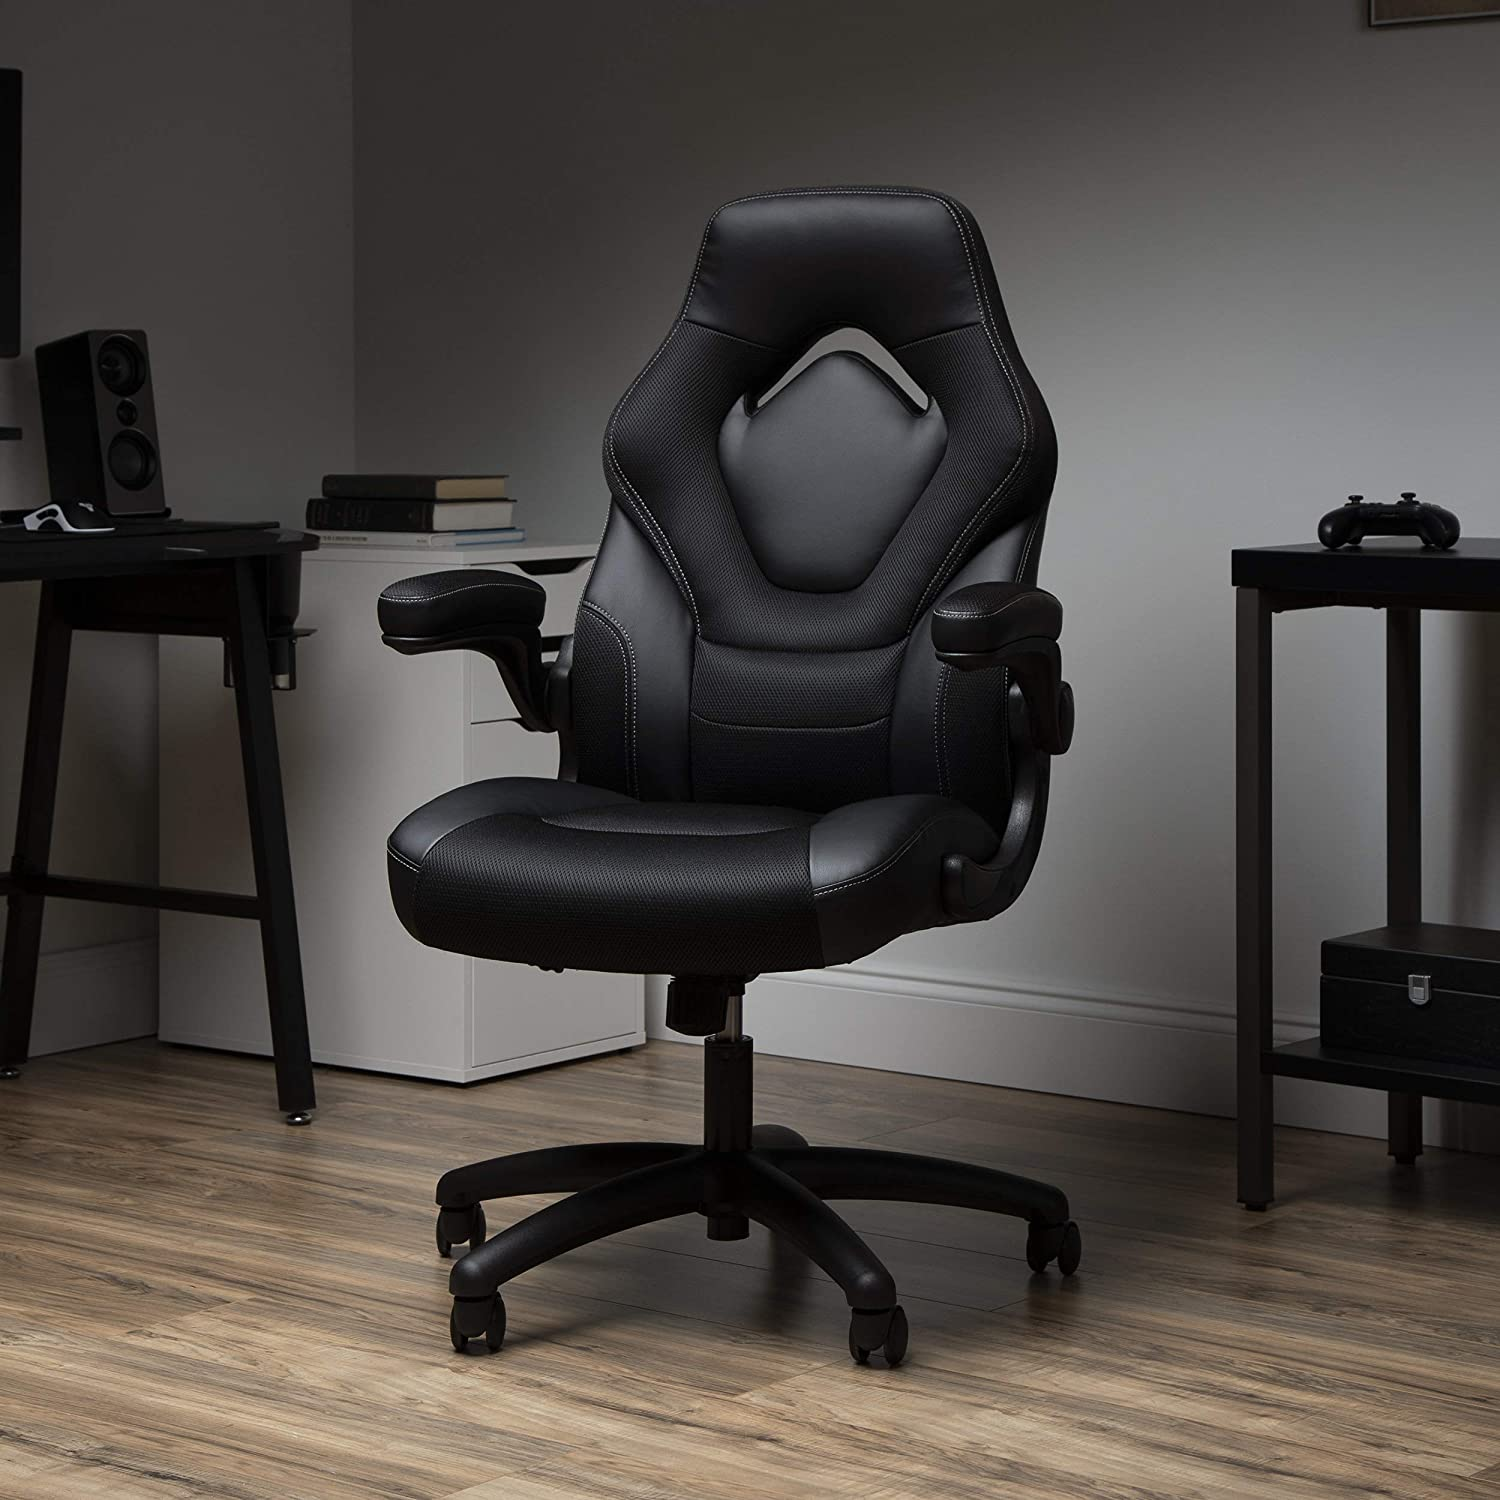 OFM ESS Gaming Chair